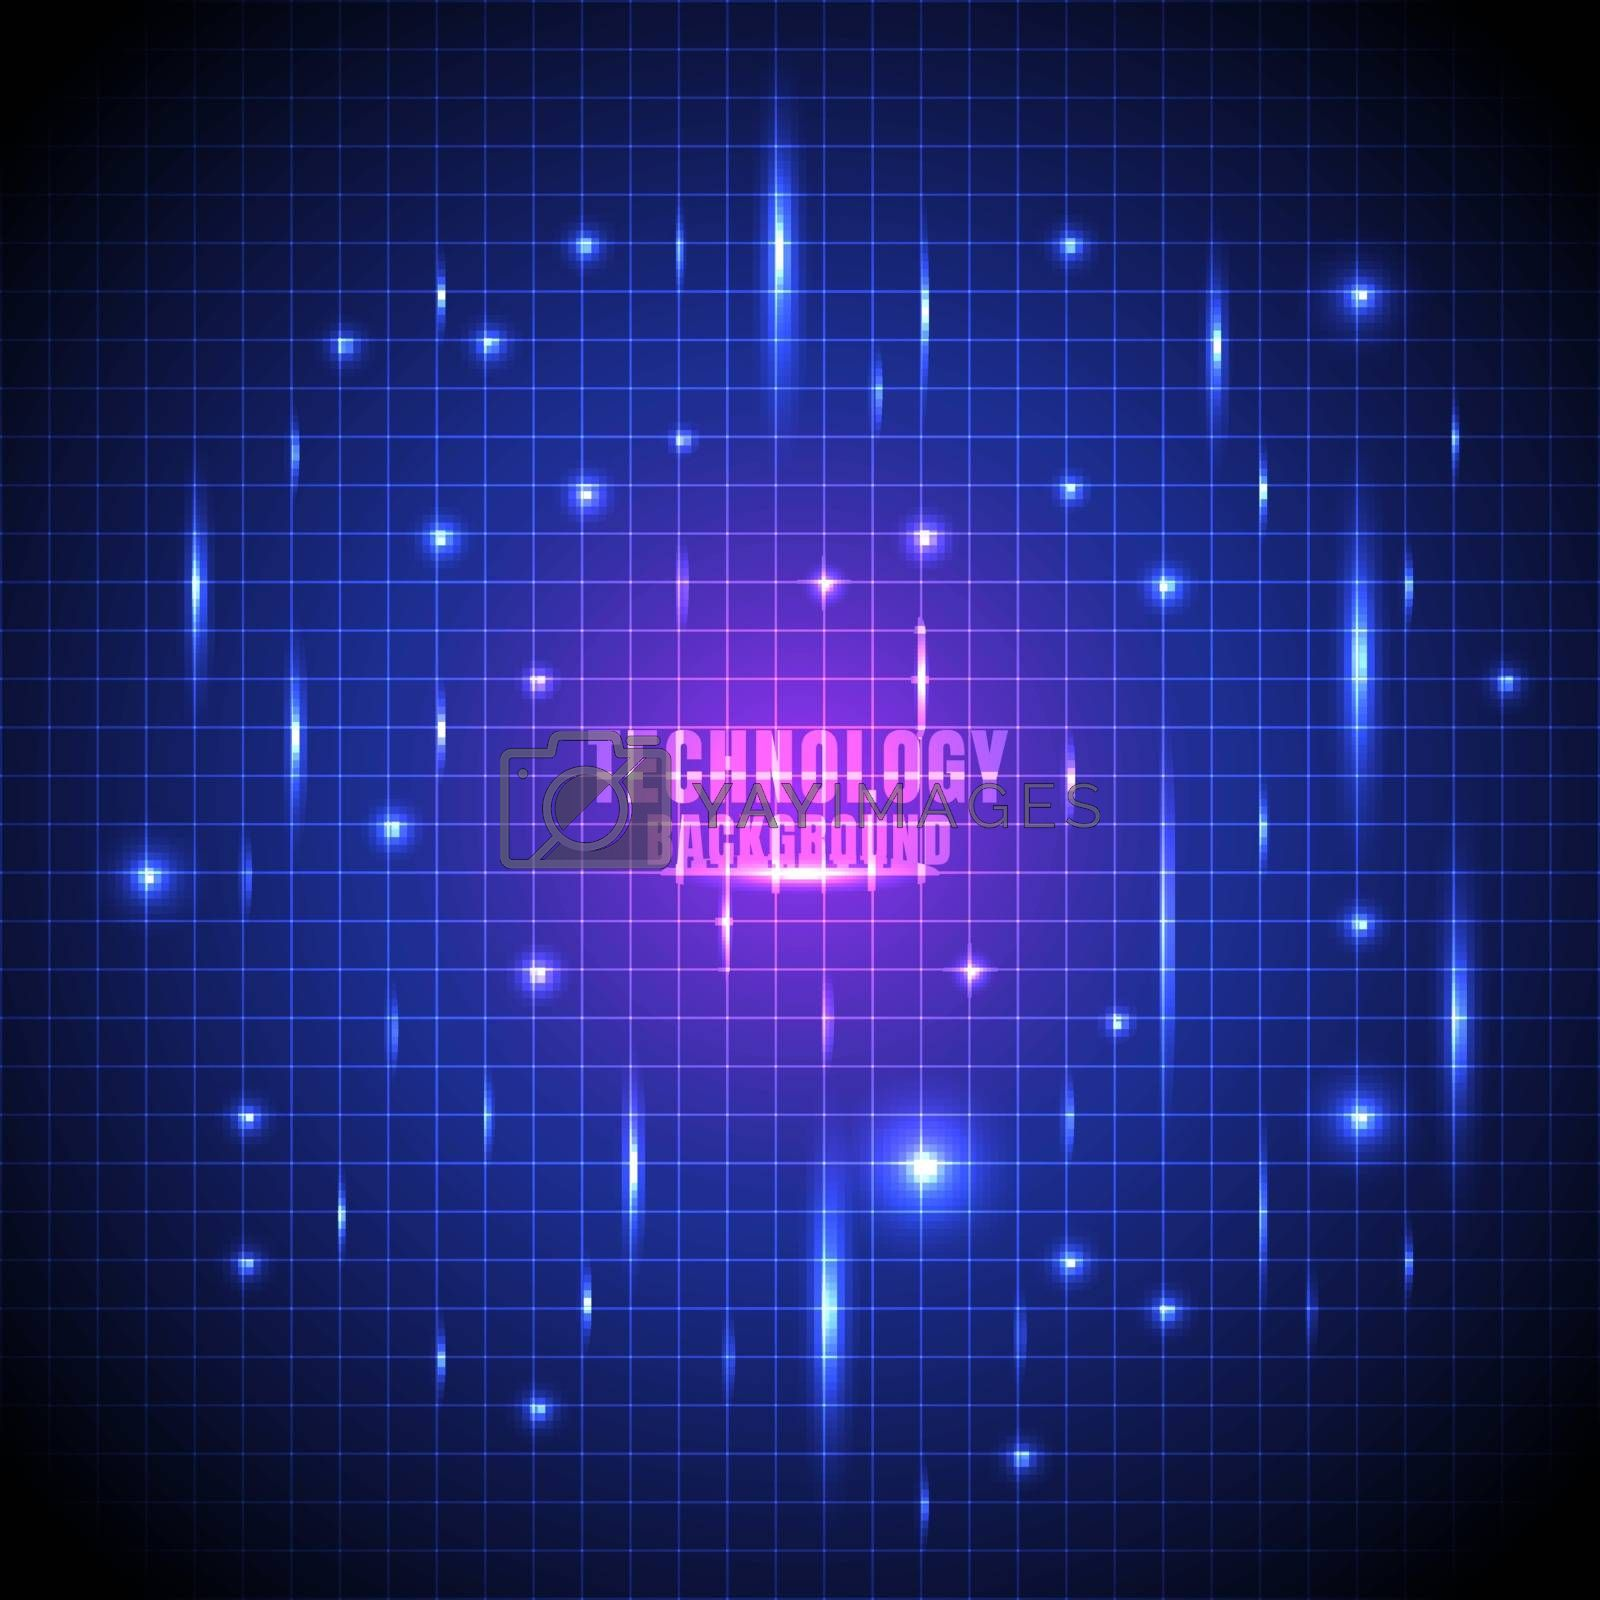 Abstract technology futuristic glow line grid with laser light blue background. Vector illustration